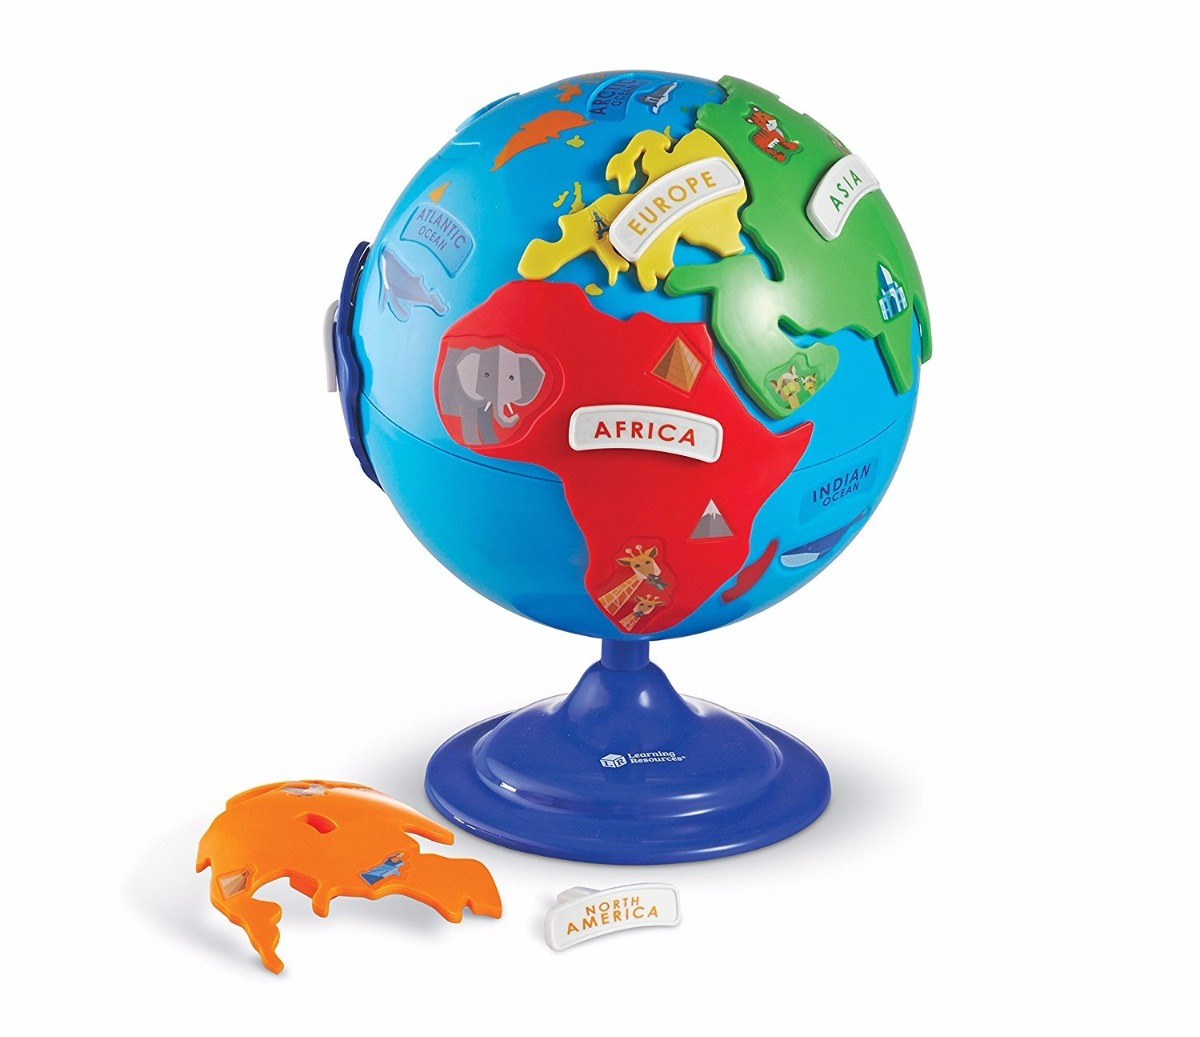 globo terraqueo rompecabezas 14 piezas learning resources